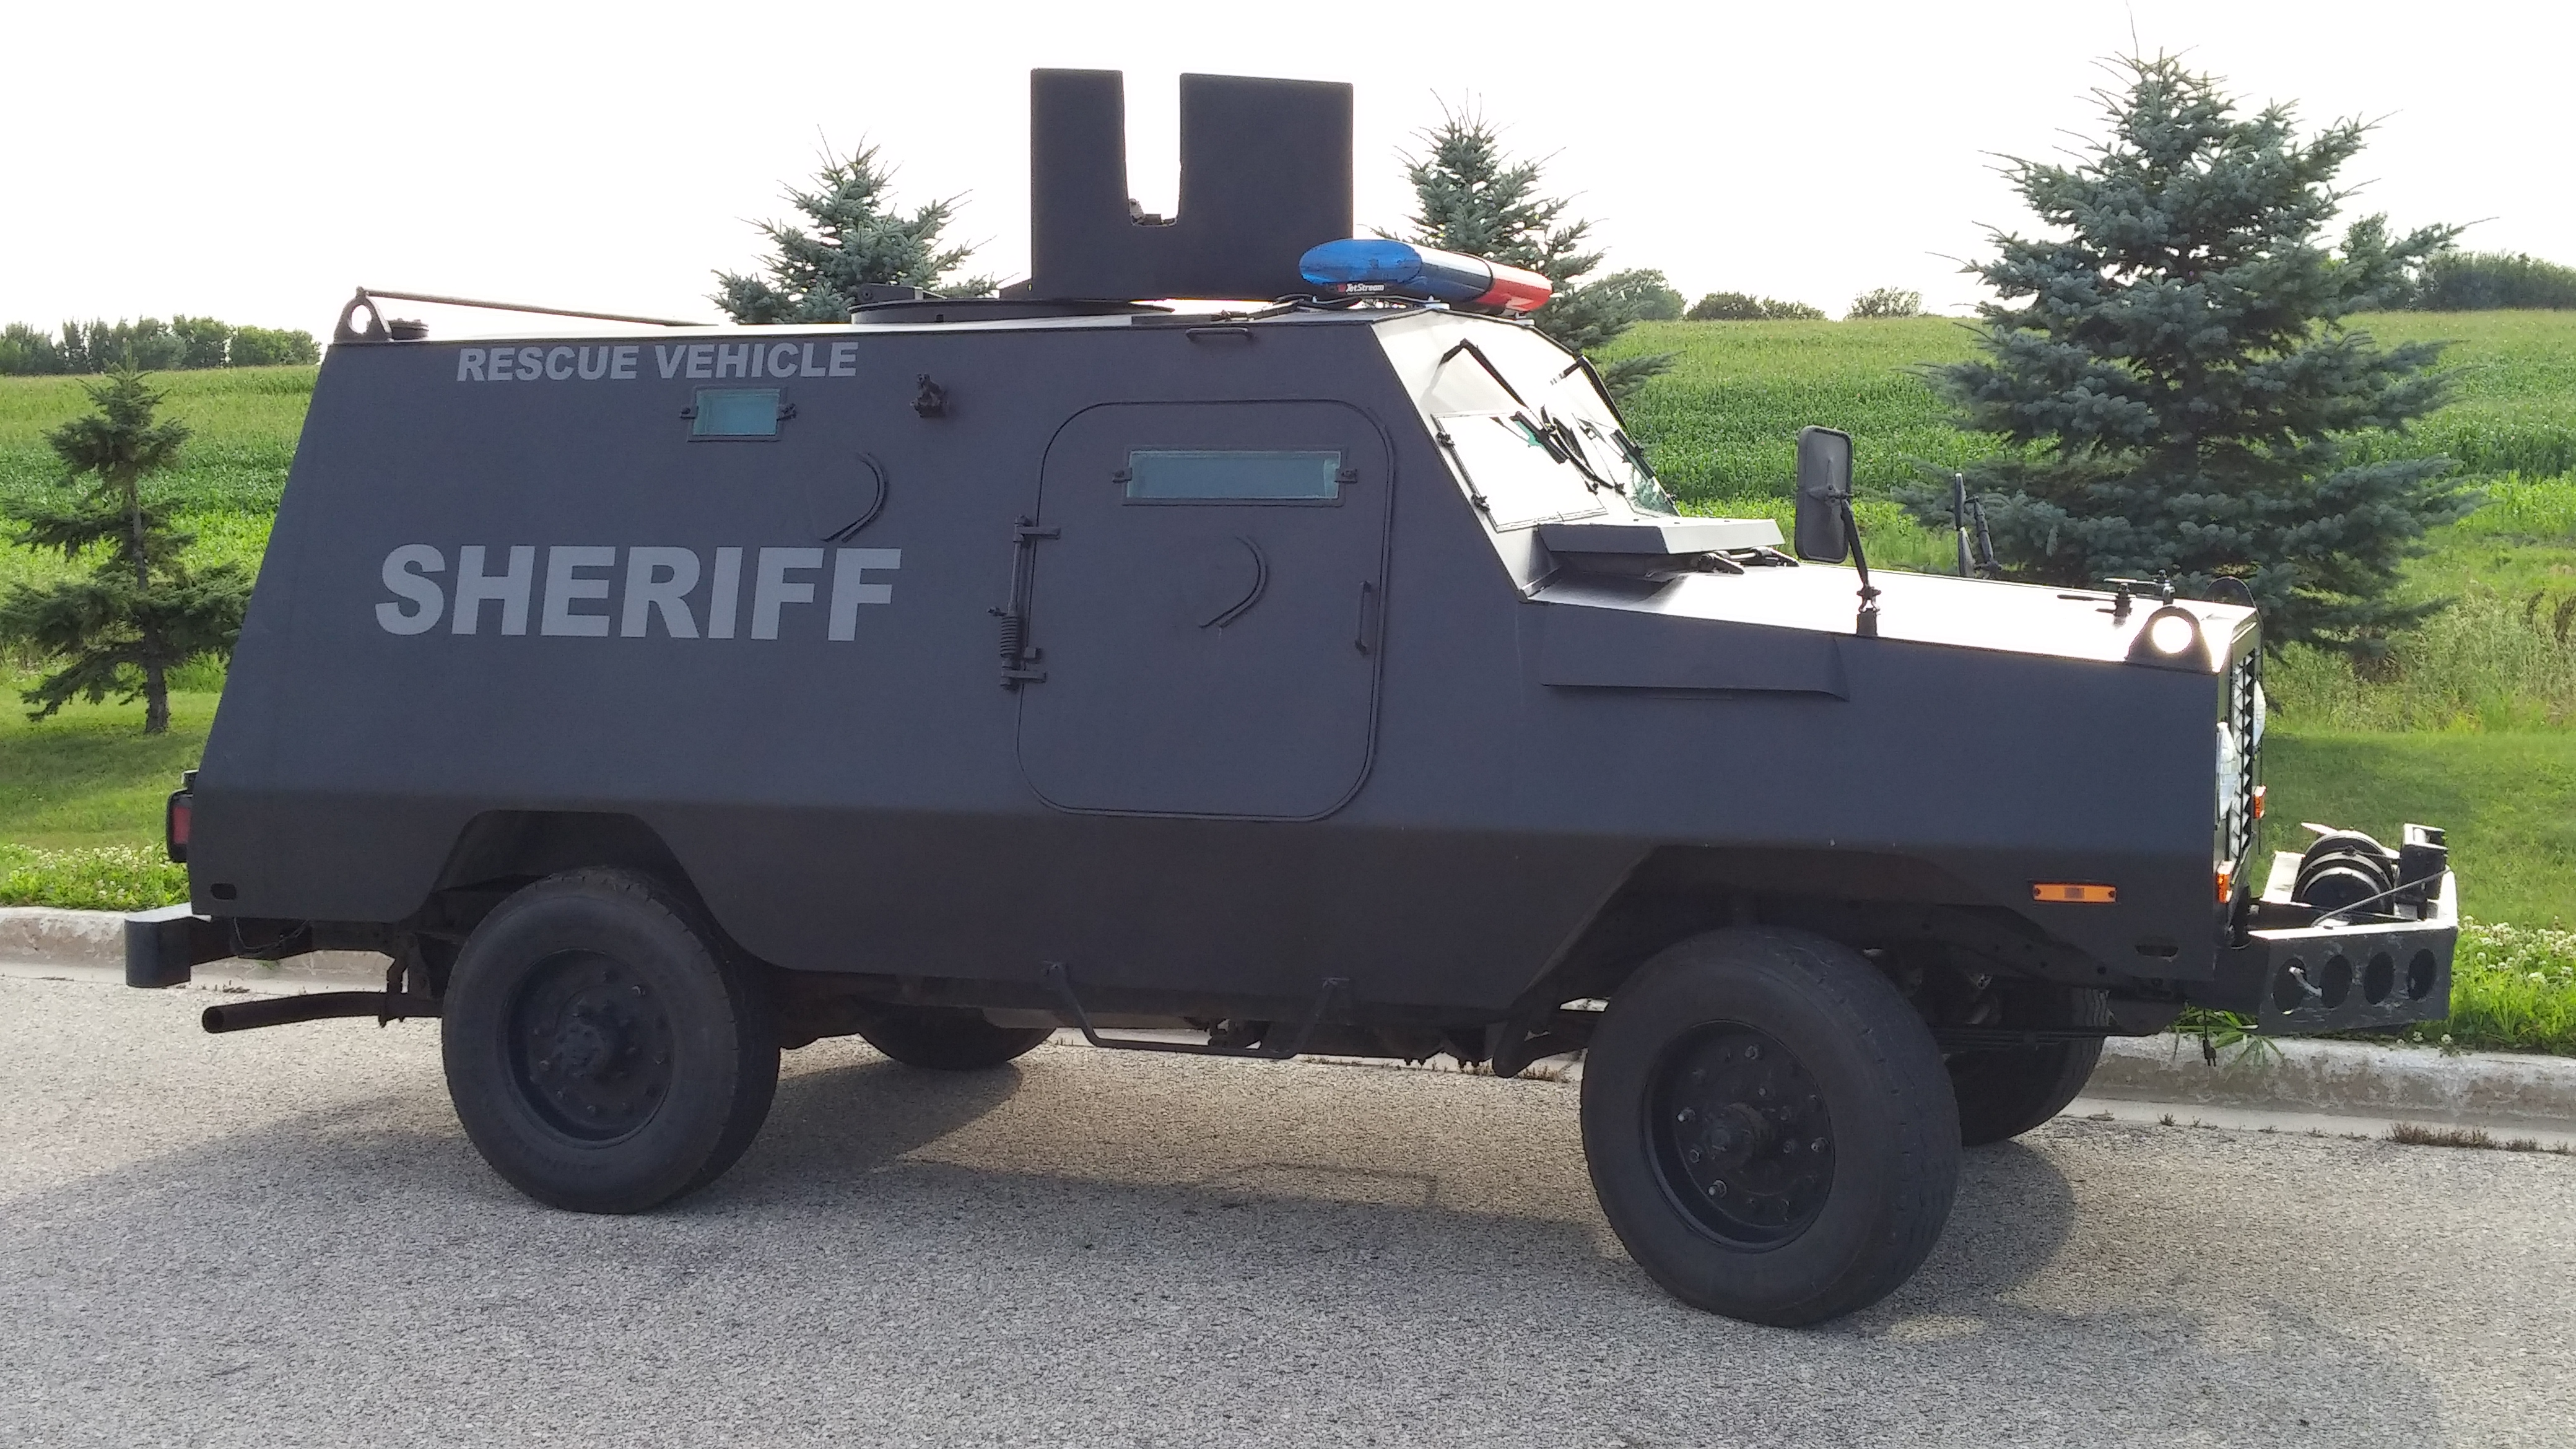 Sheriff Rescue Vehicle